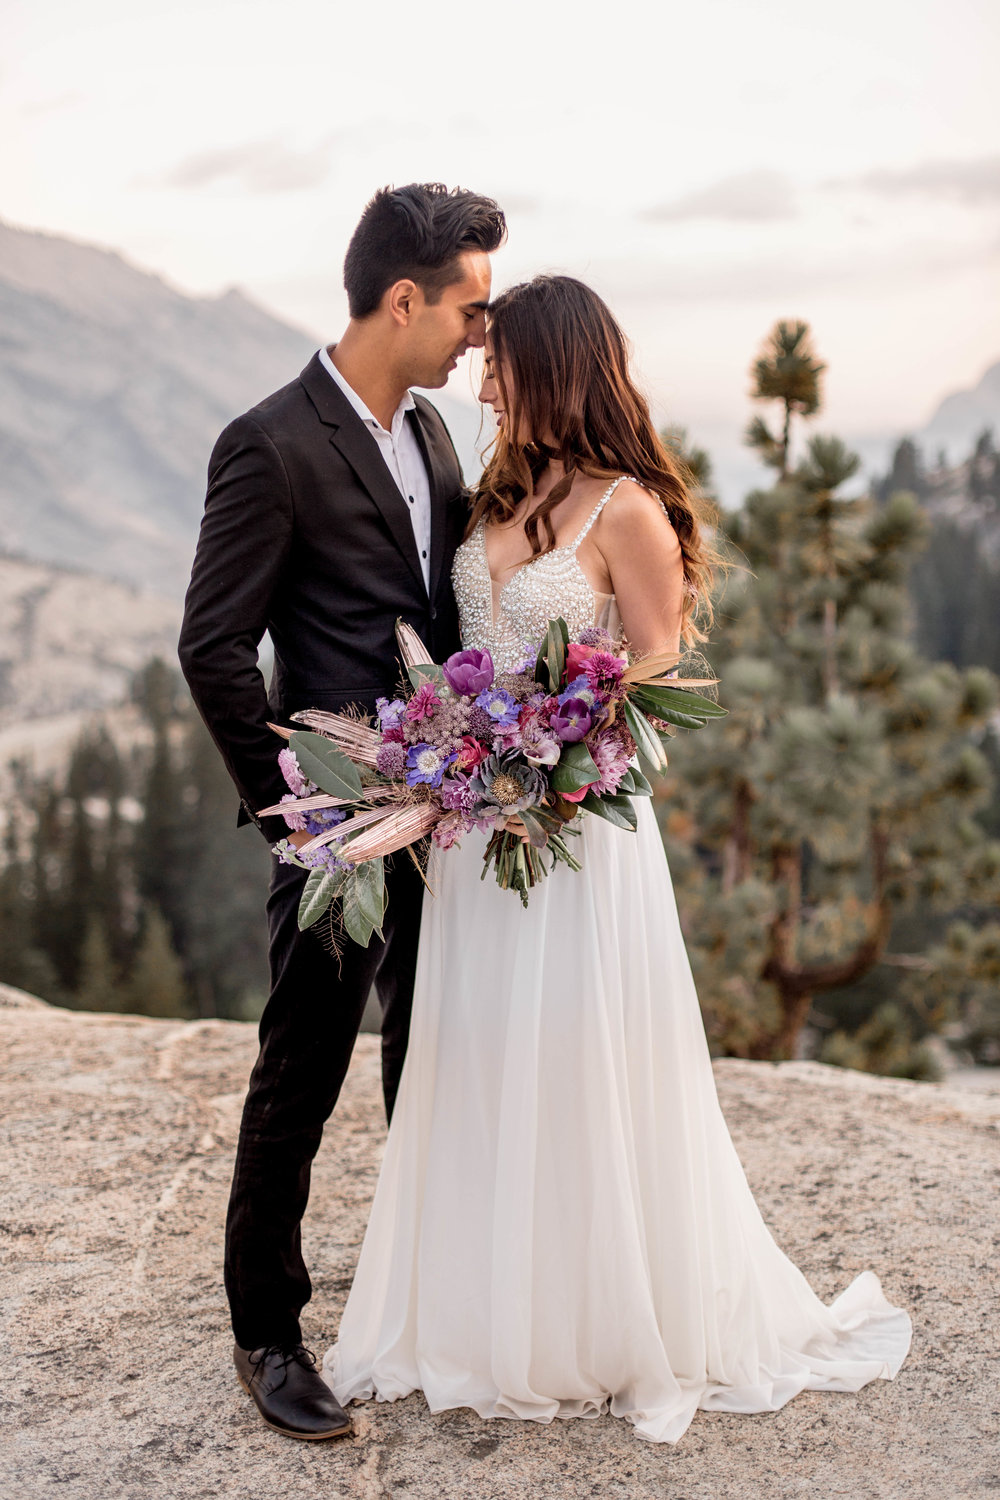 nicole-daacke-photography-yosemite-national-park-wedding-sunset-elopement-olmstead-point-yosemite-adventure-wedding-photographer-adventurous-elopement-destination-wedding-national-park-wedding-photography-1307.jpg